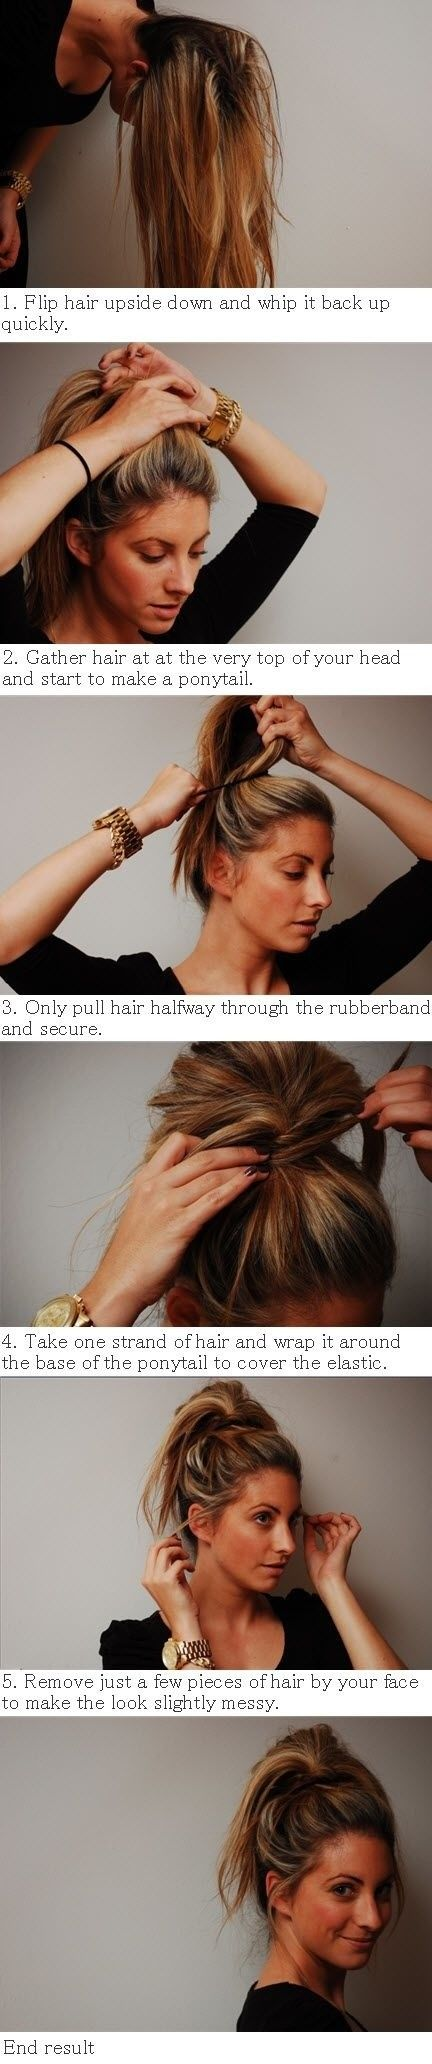 best hair images on pinterest hairstyle ideas beautiful